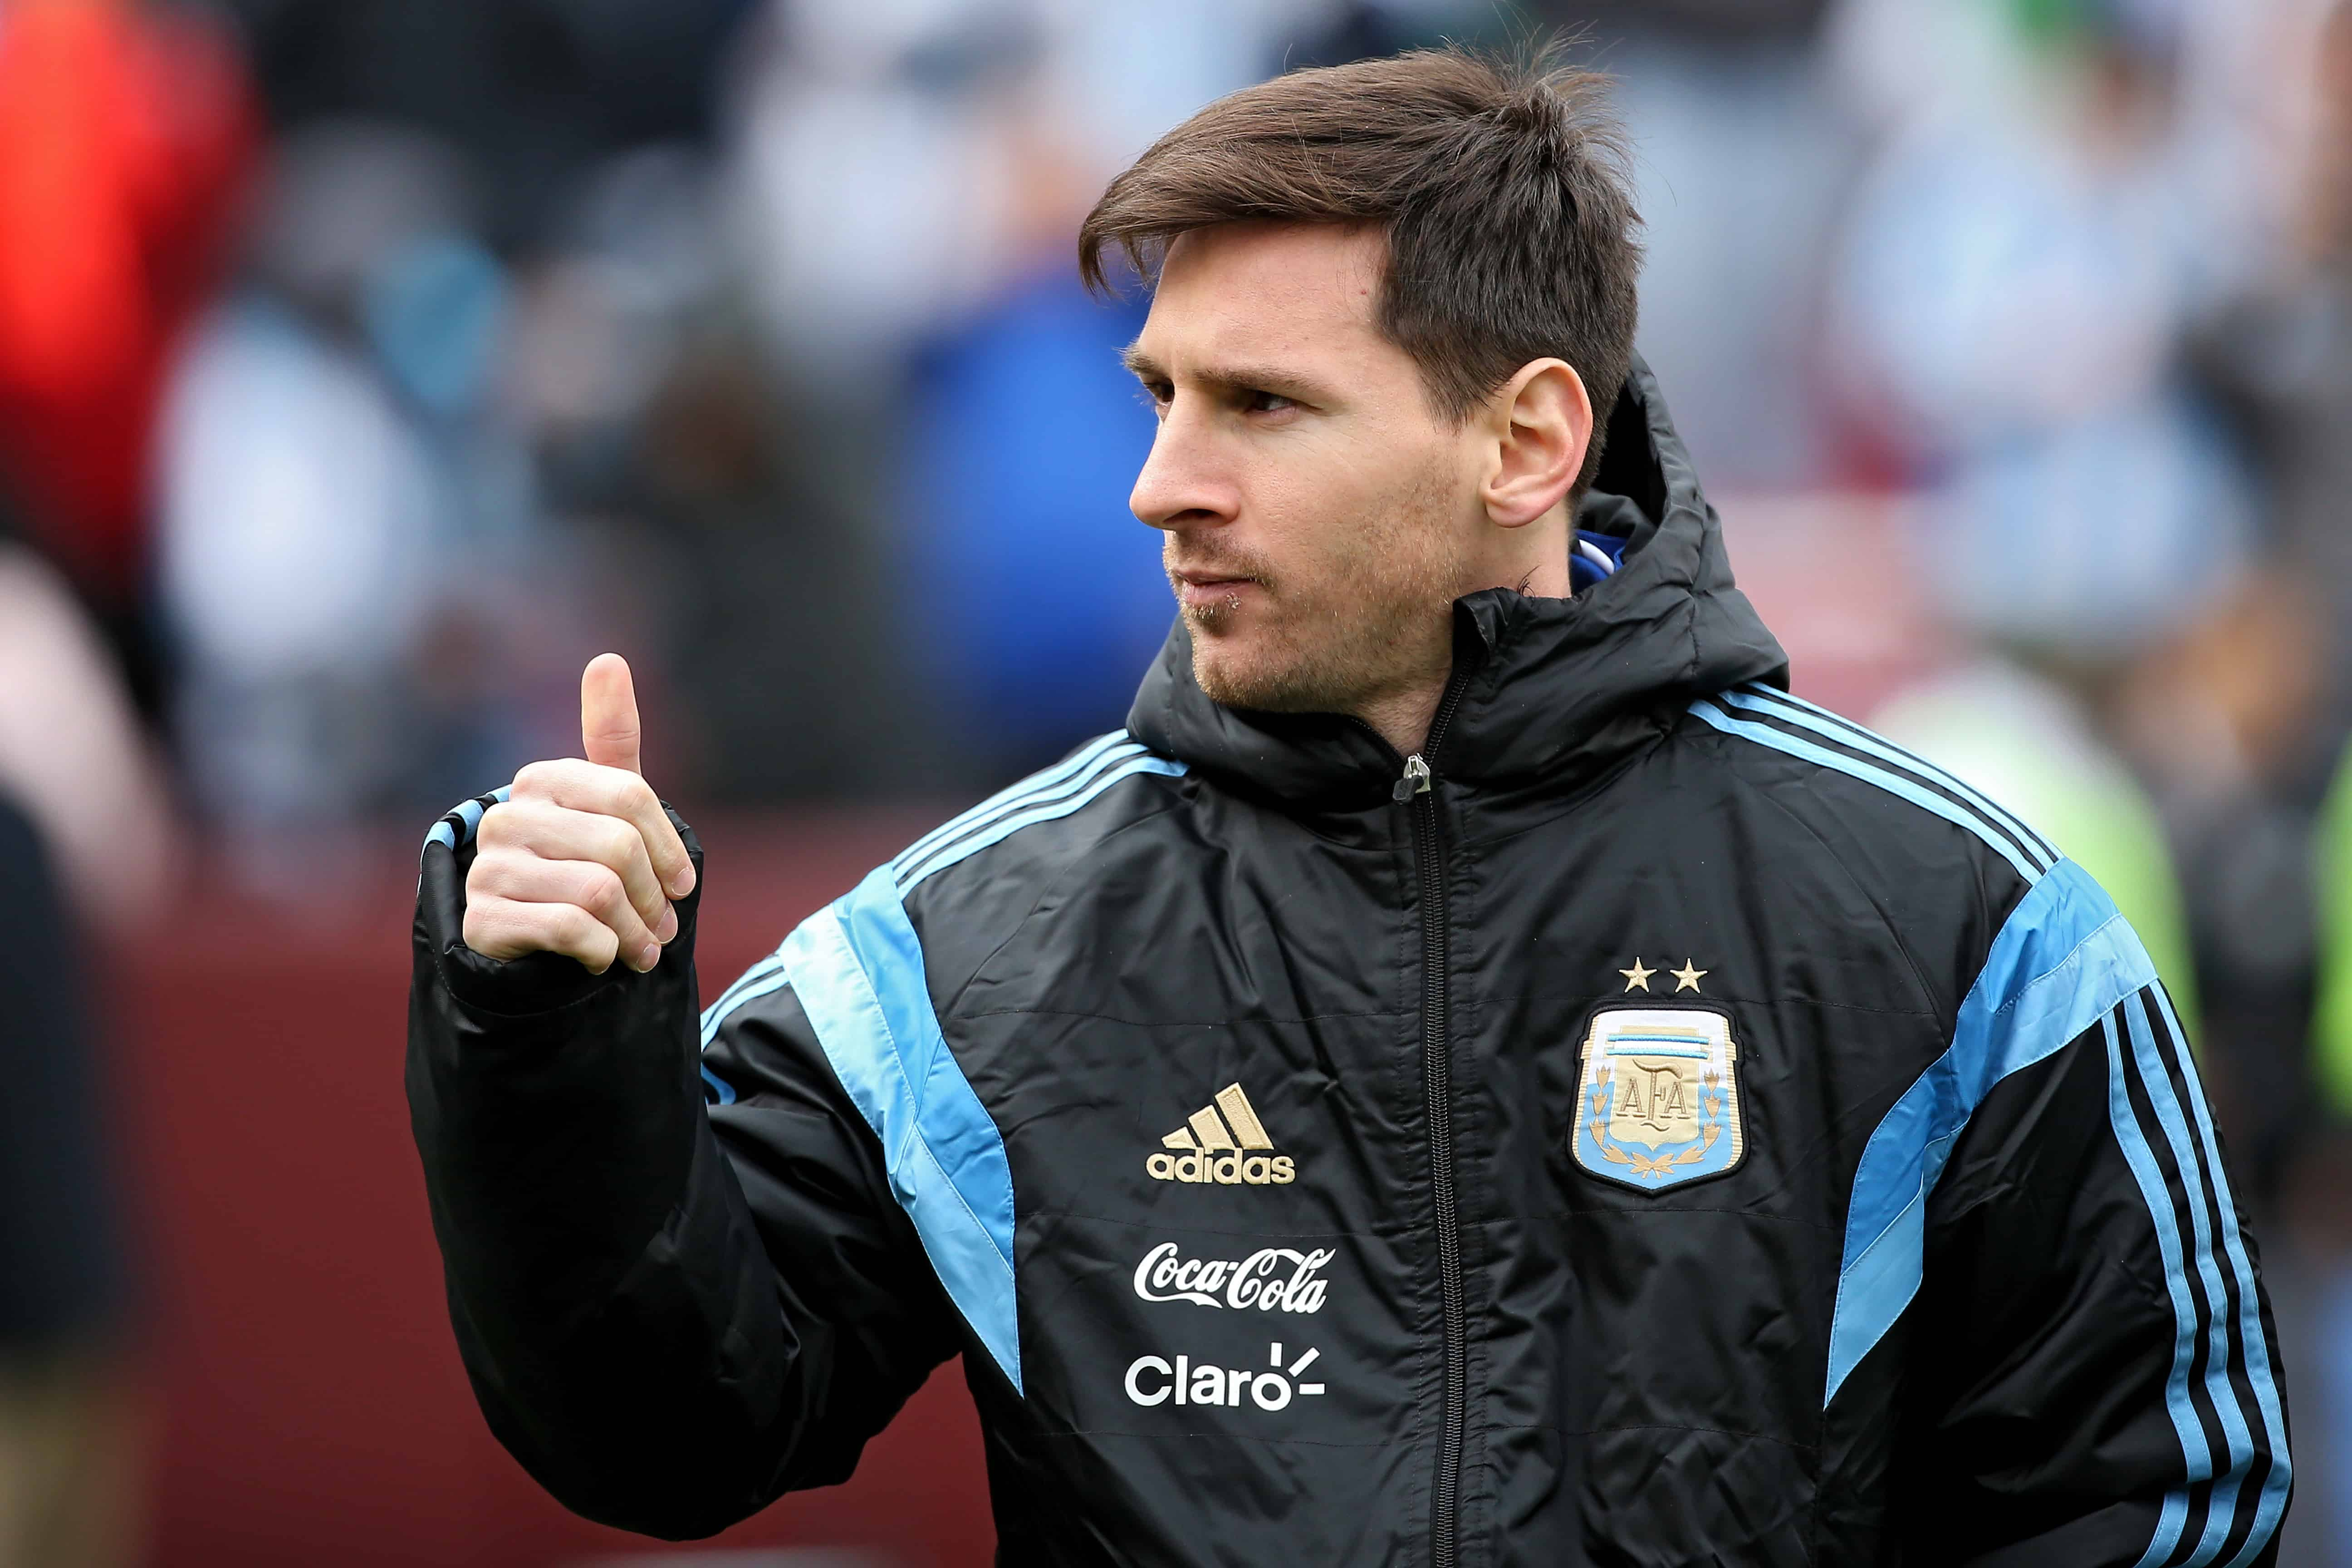 Argentina's Lionel Messi acknowledges the crowd before his team plays El Salvador during an International Friendly at FedExField on March 28, 2015 in Landover, Maryland.